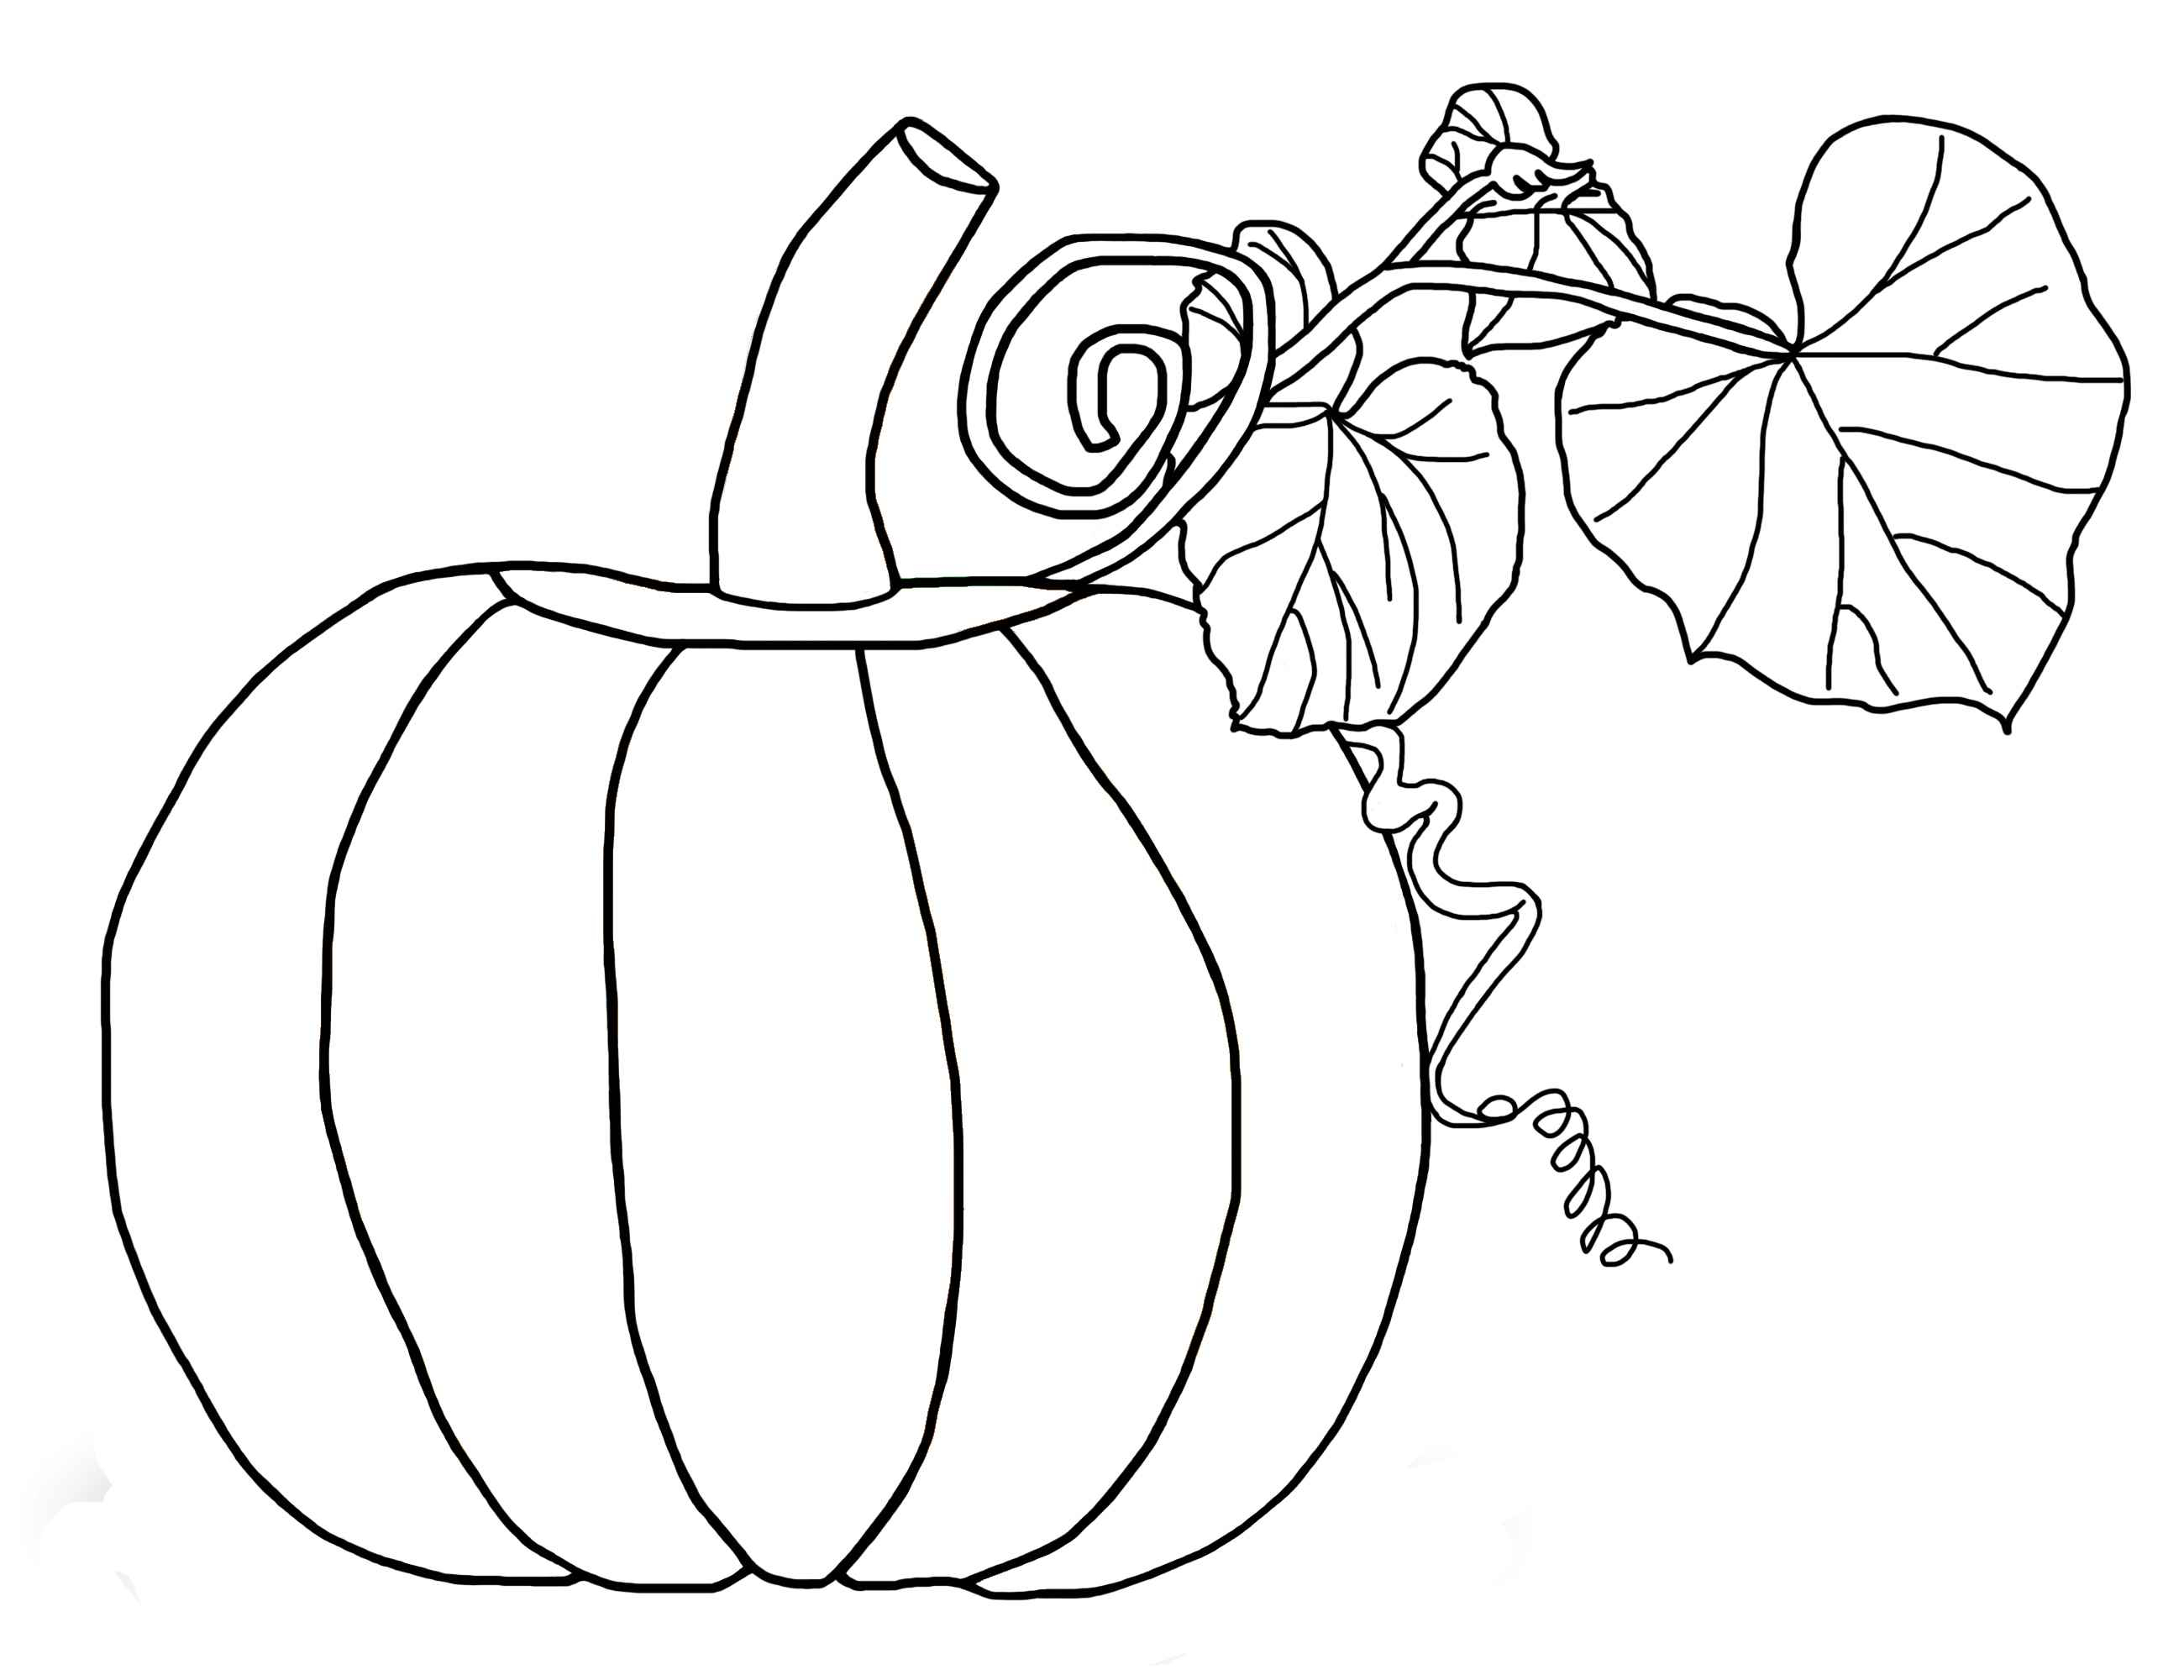 Free Pumpkin Coloring Pages For Kids - Free Printable Pumpkin Coloring Pages